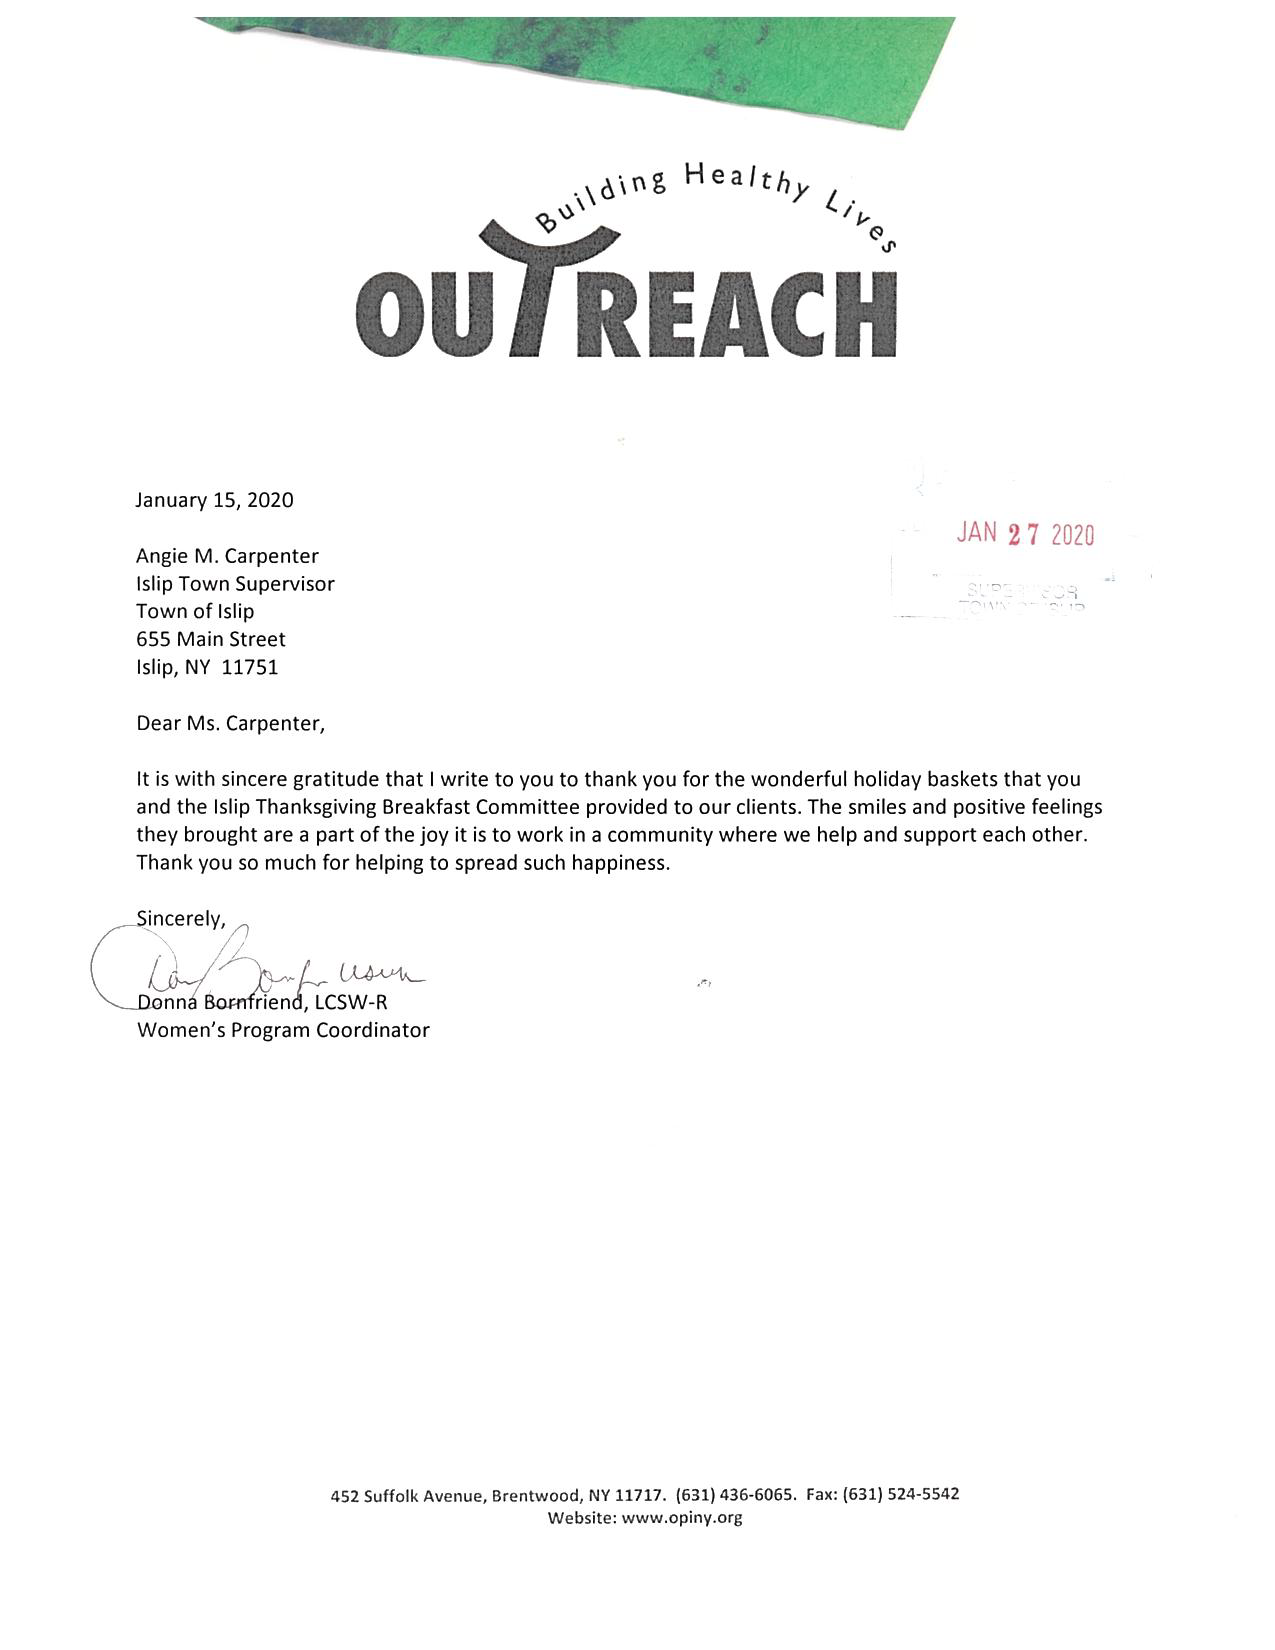 A letter of thanks from Outreach, for Town of Islips involvement in collecting holiday baskets for thanksgiving.